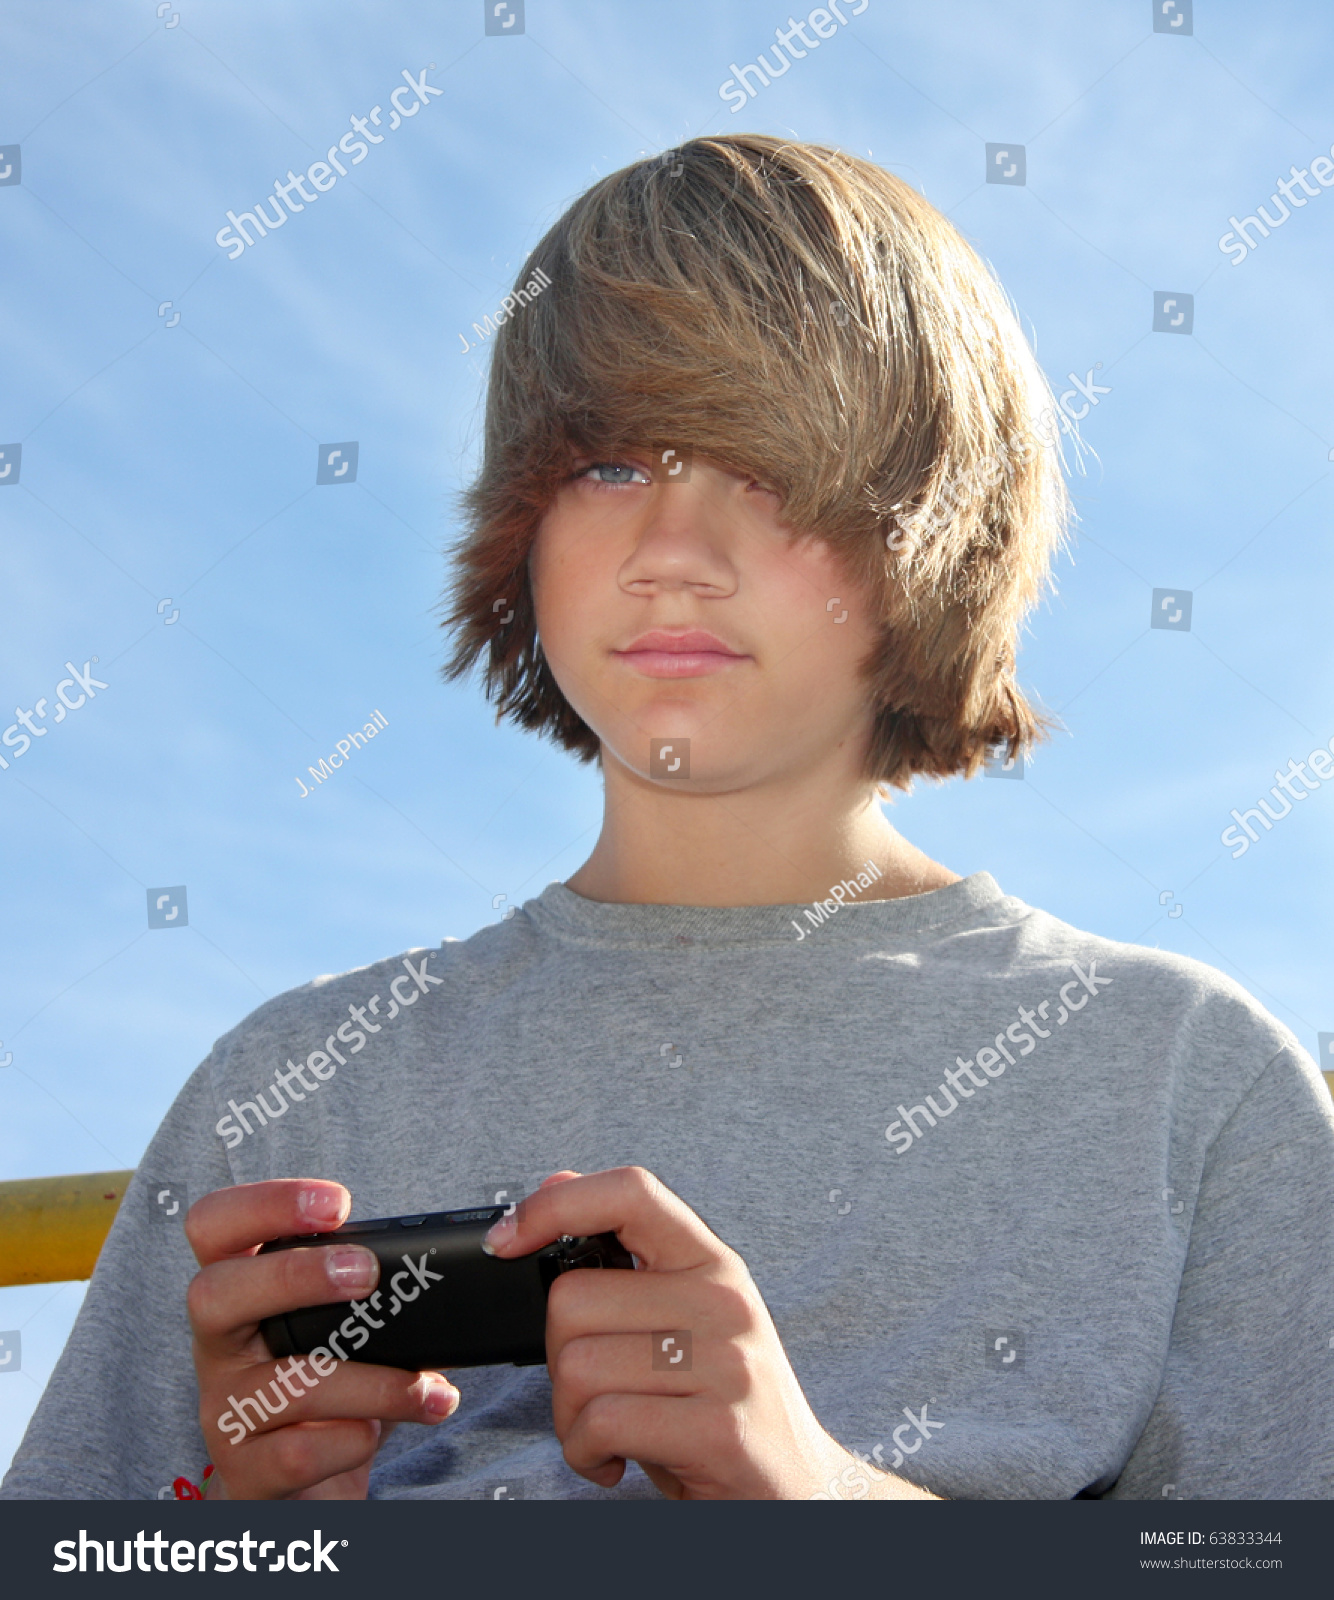 Cute Teen Boy Cell Phone Texting Stock Photo (Edit Now) 11